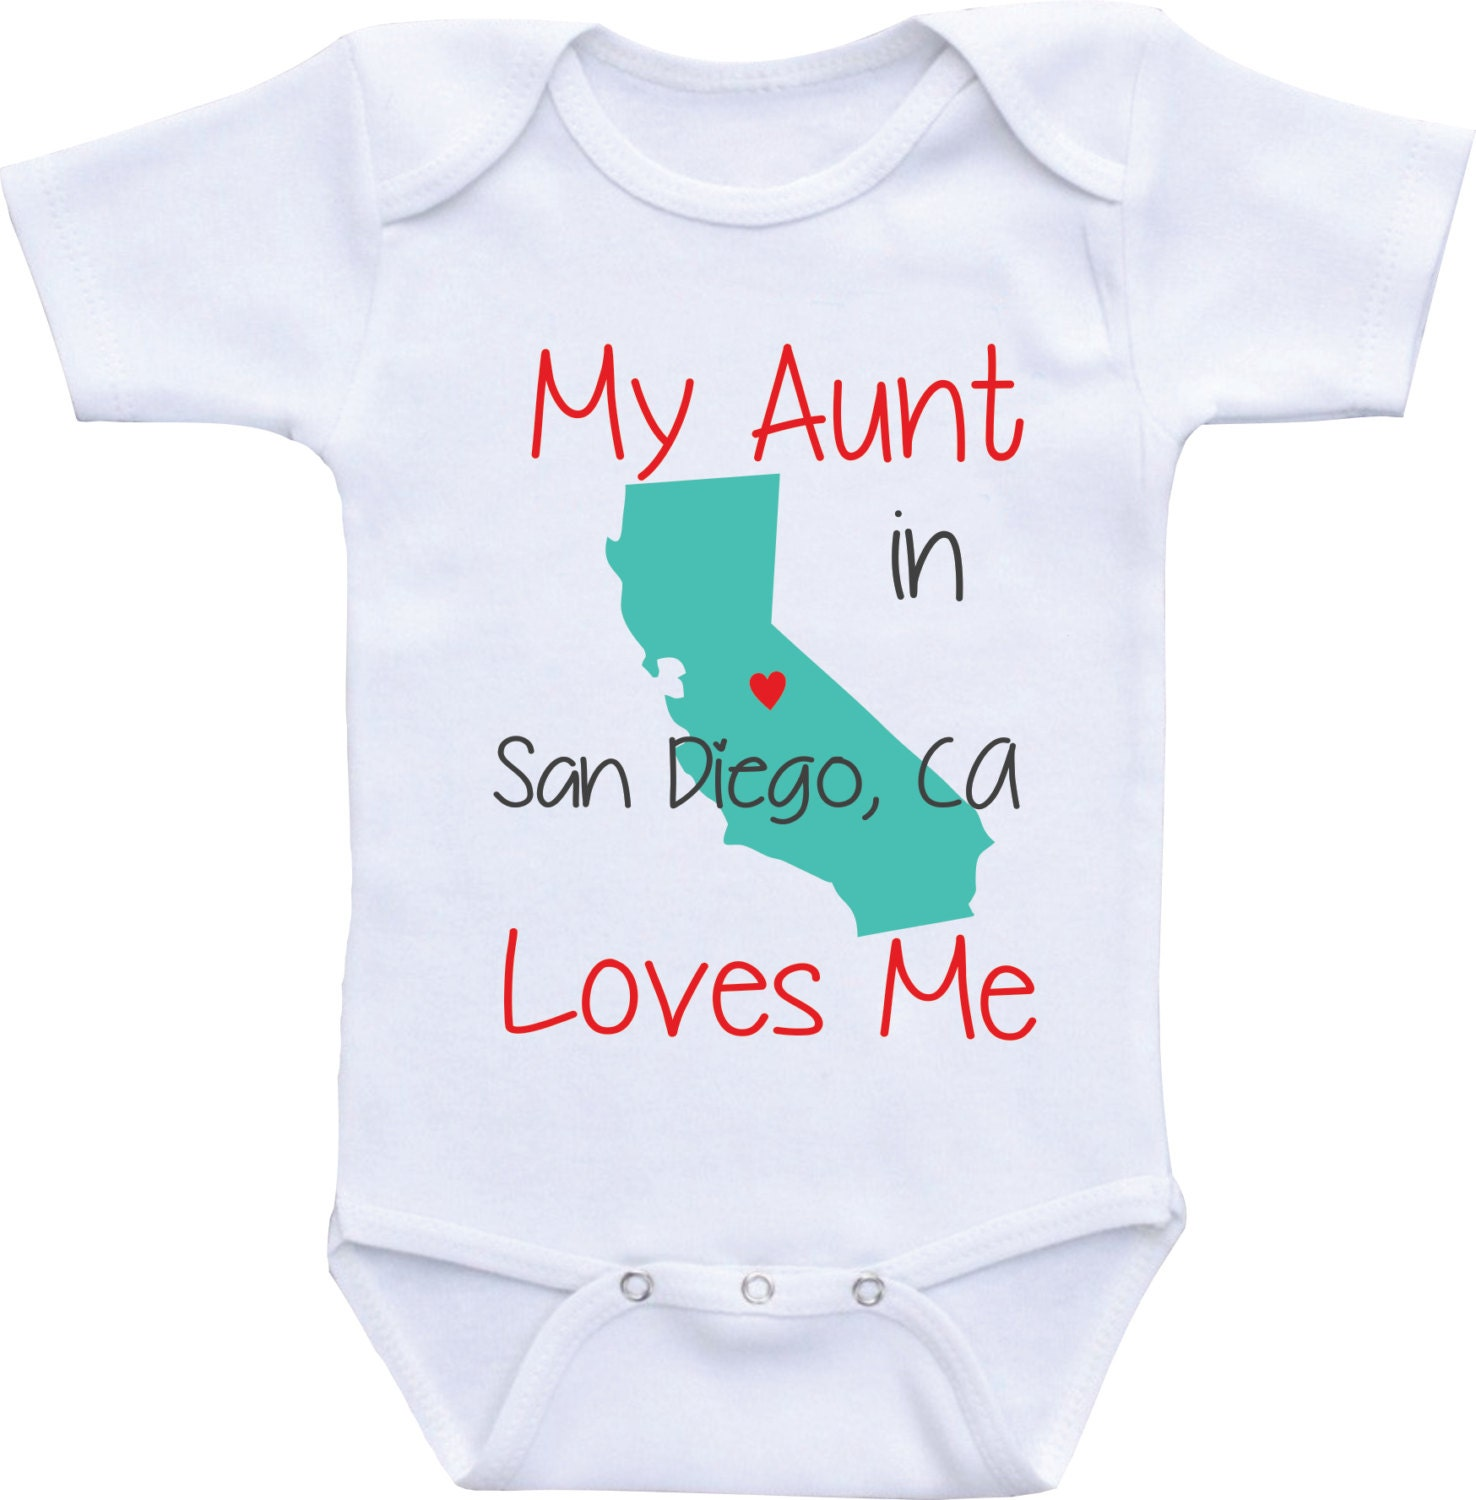 My Aunt Loves Me Available in different States Auntie baby